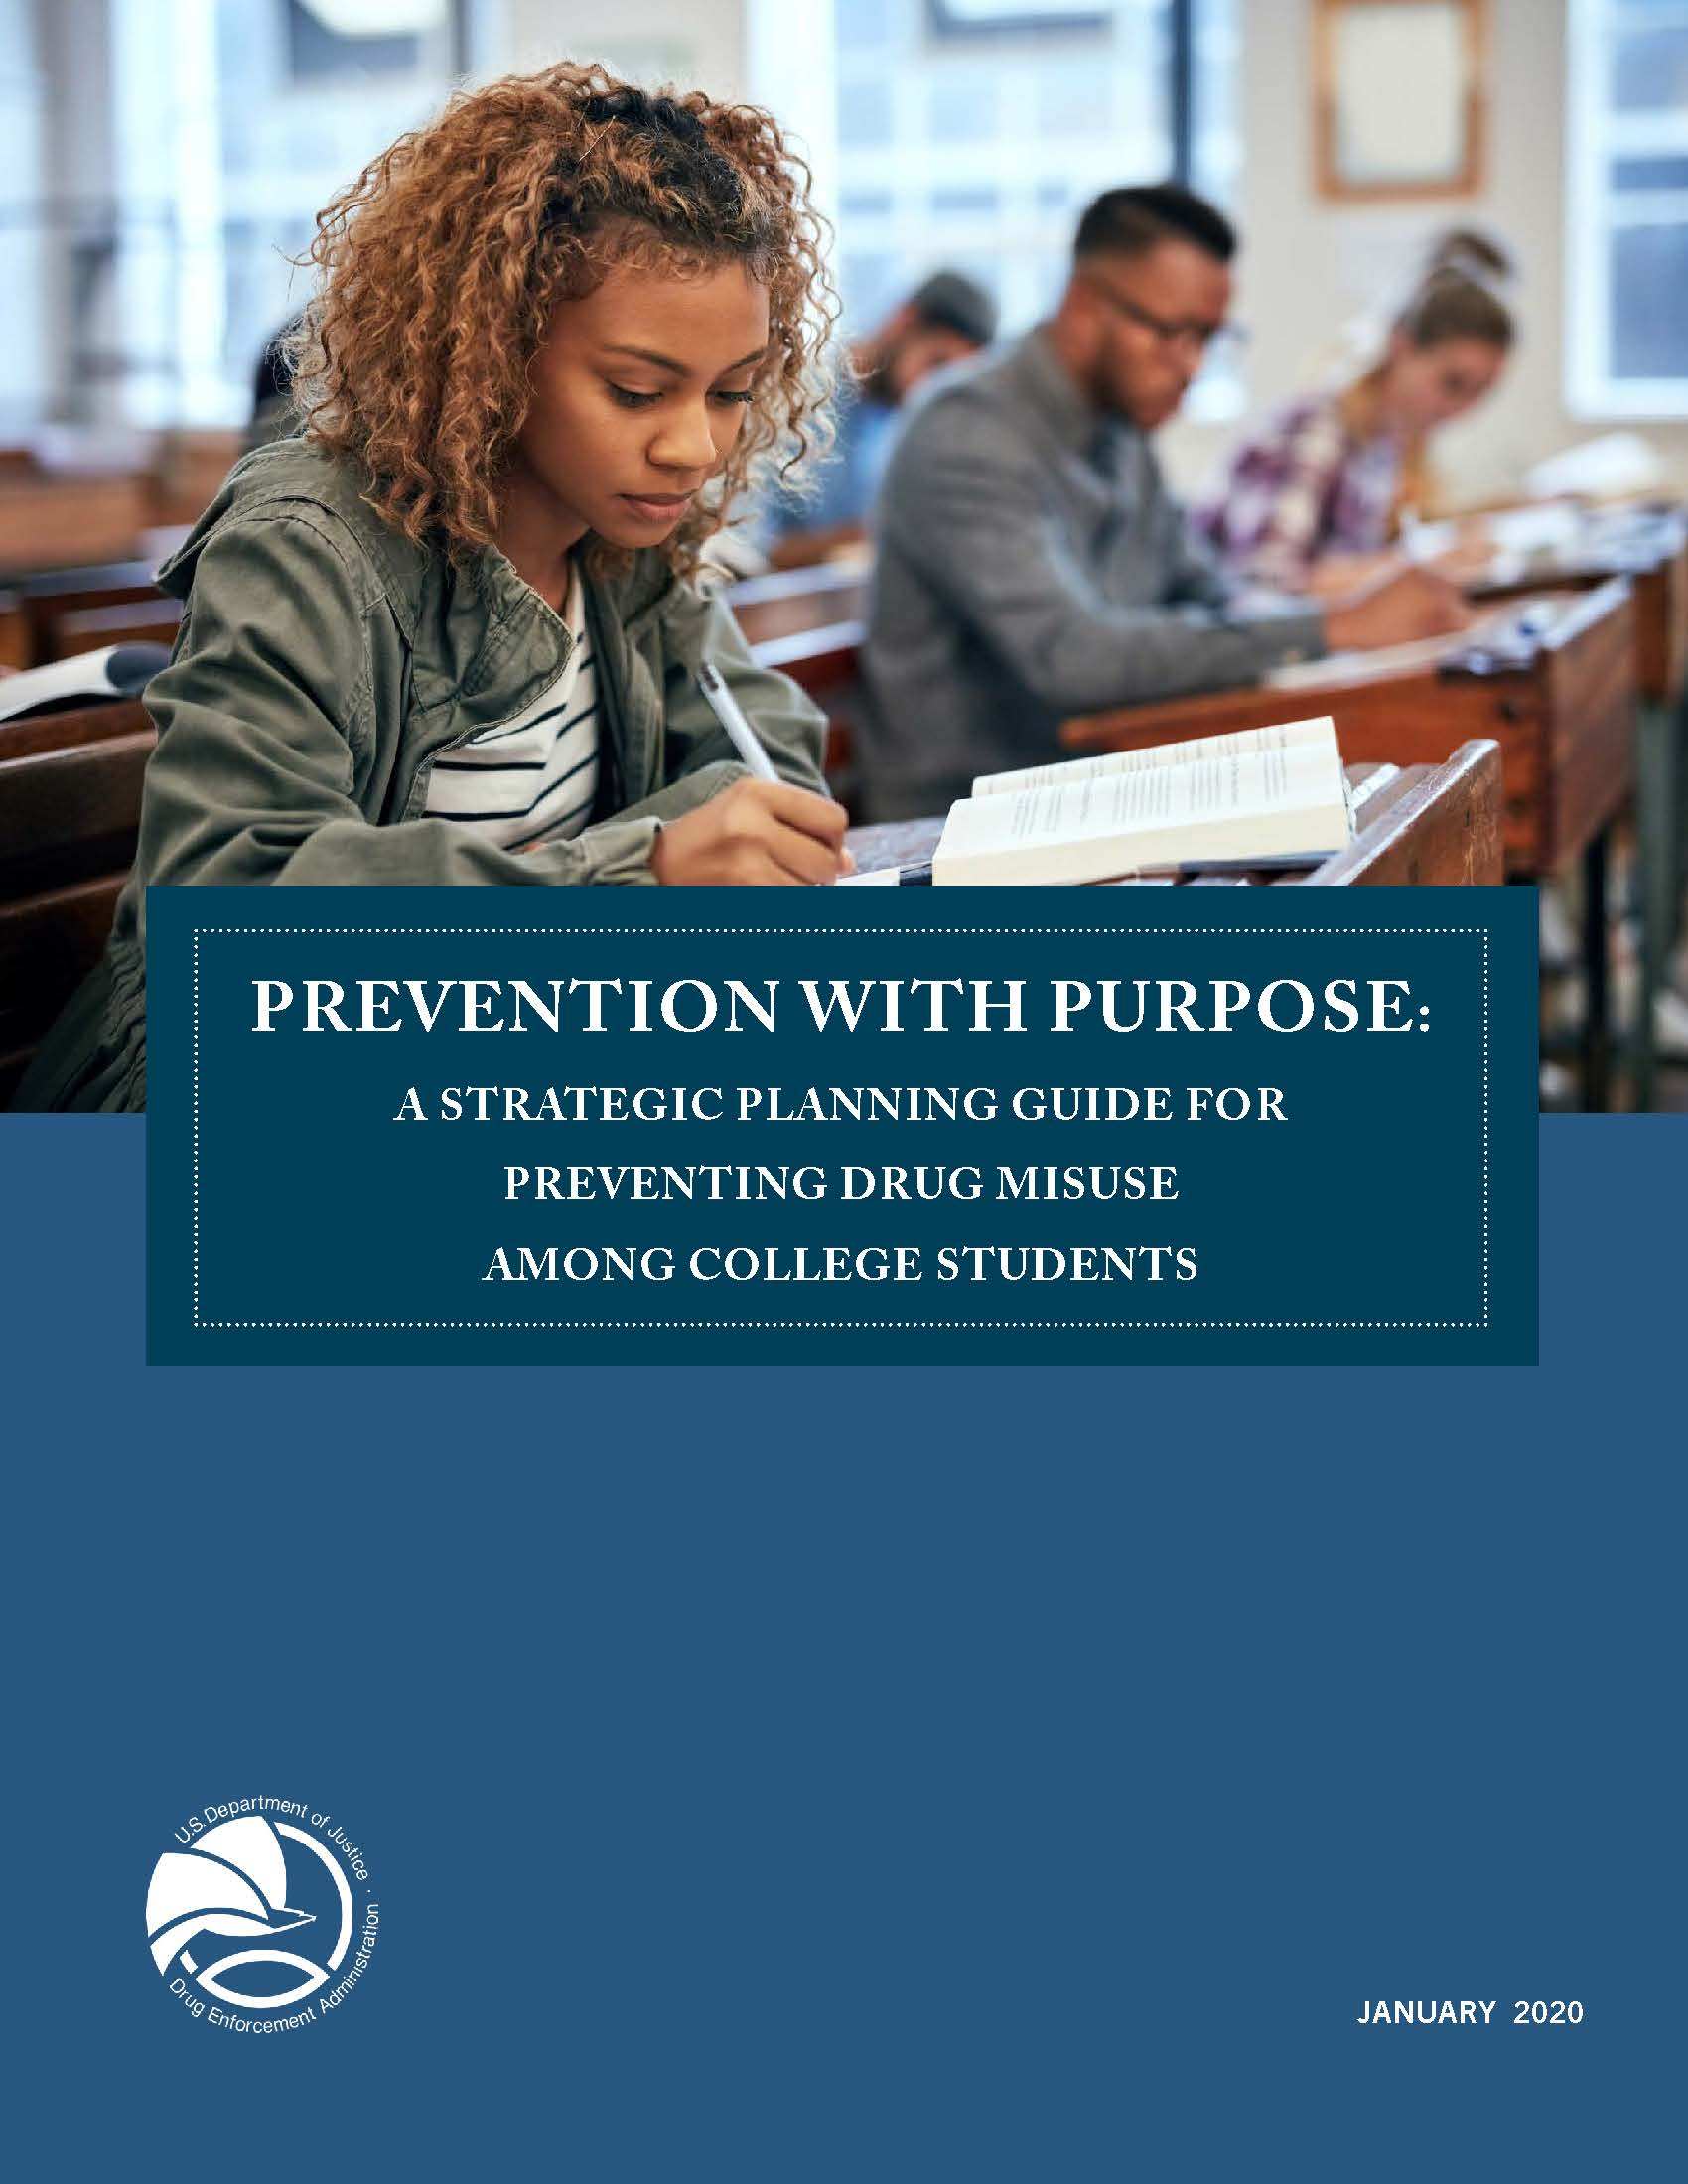 Prevention with Purpose: A Strategic Planning Guide for Preventing Drug Misuse Among College Students  - Cover